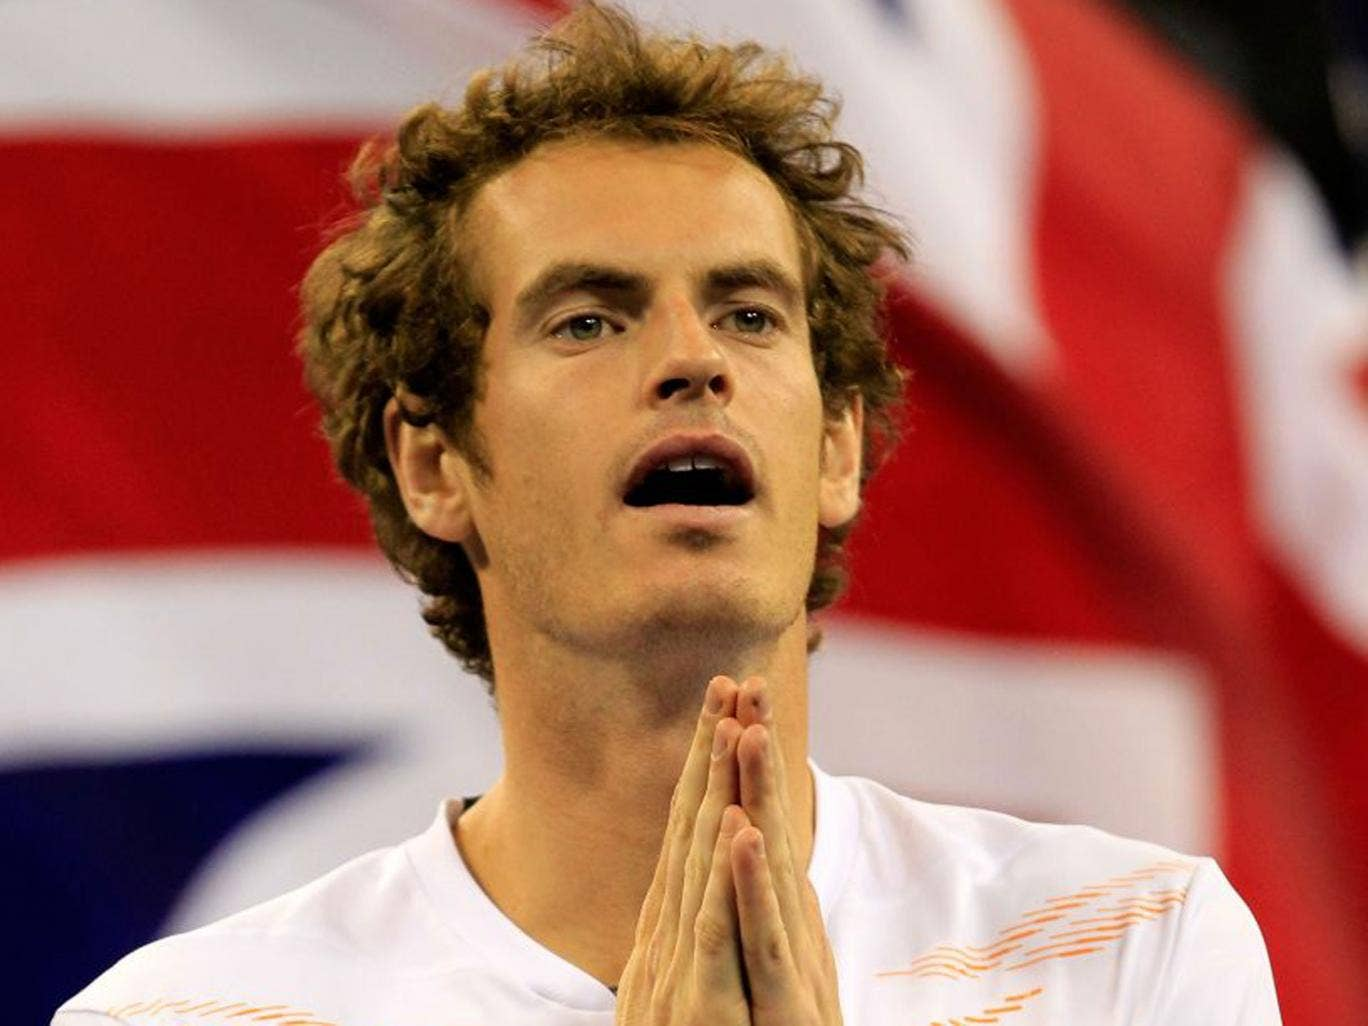 Andy Murray reacts to winning the US Open in New York in September